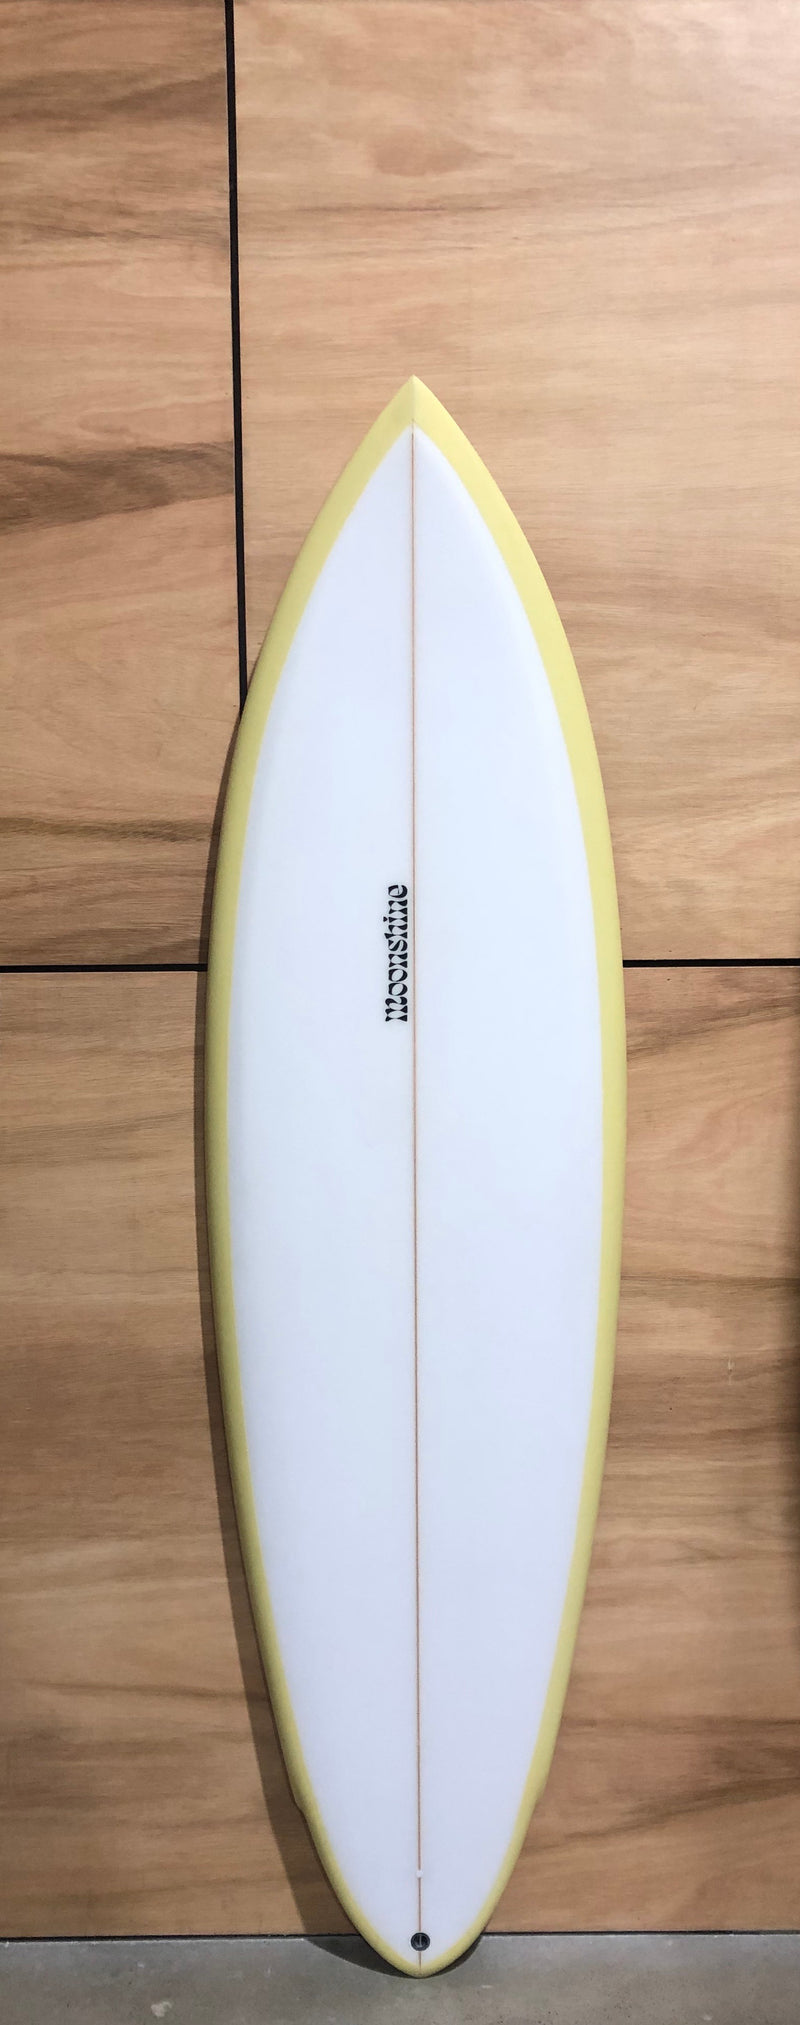 Moonshine Single Fin - Board Store MoonshineSurfboard